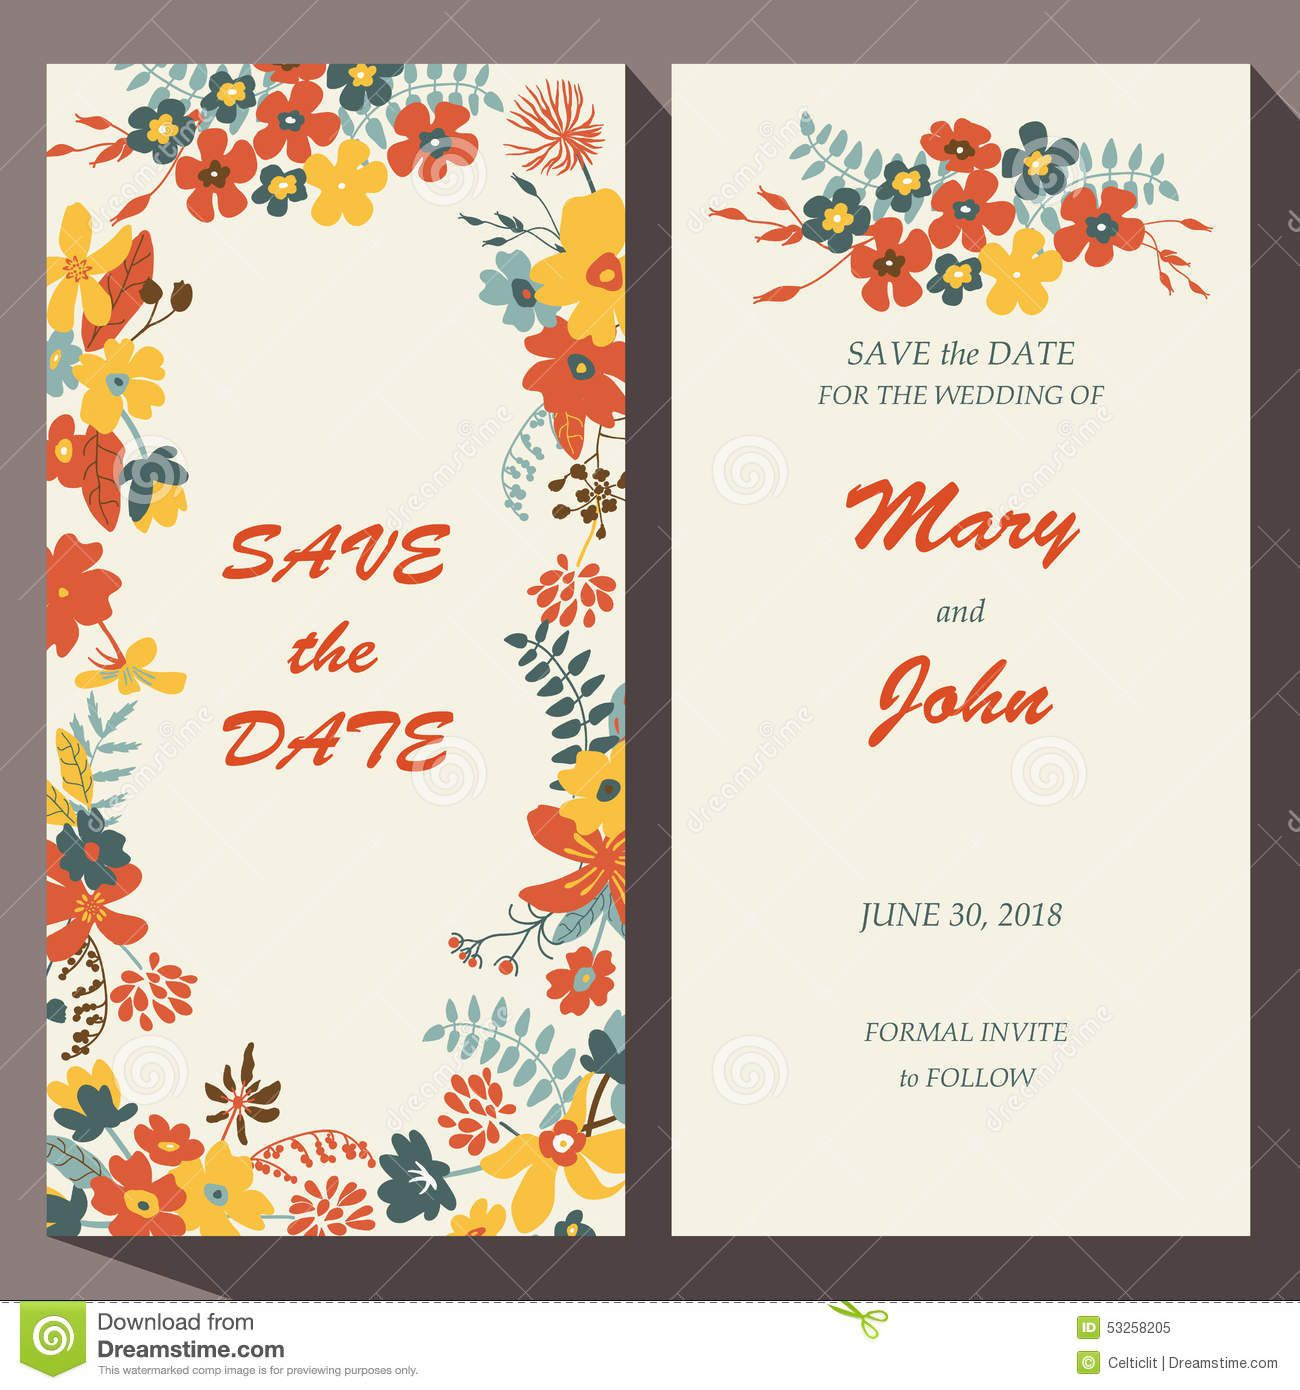 008 Fascinating Save The Date Birthday Card Template High Def  Free PrintableFull